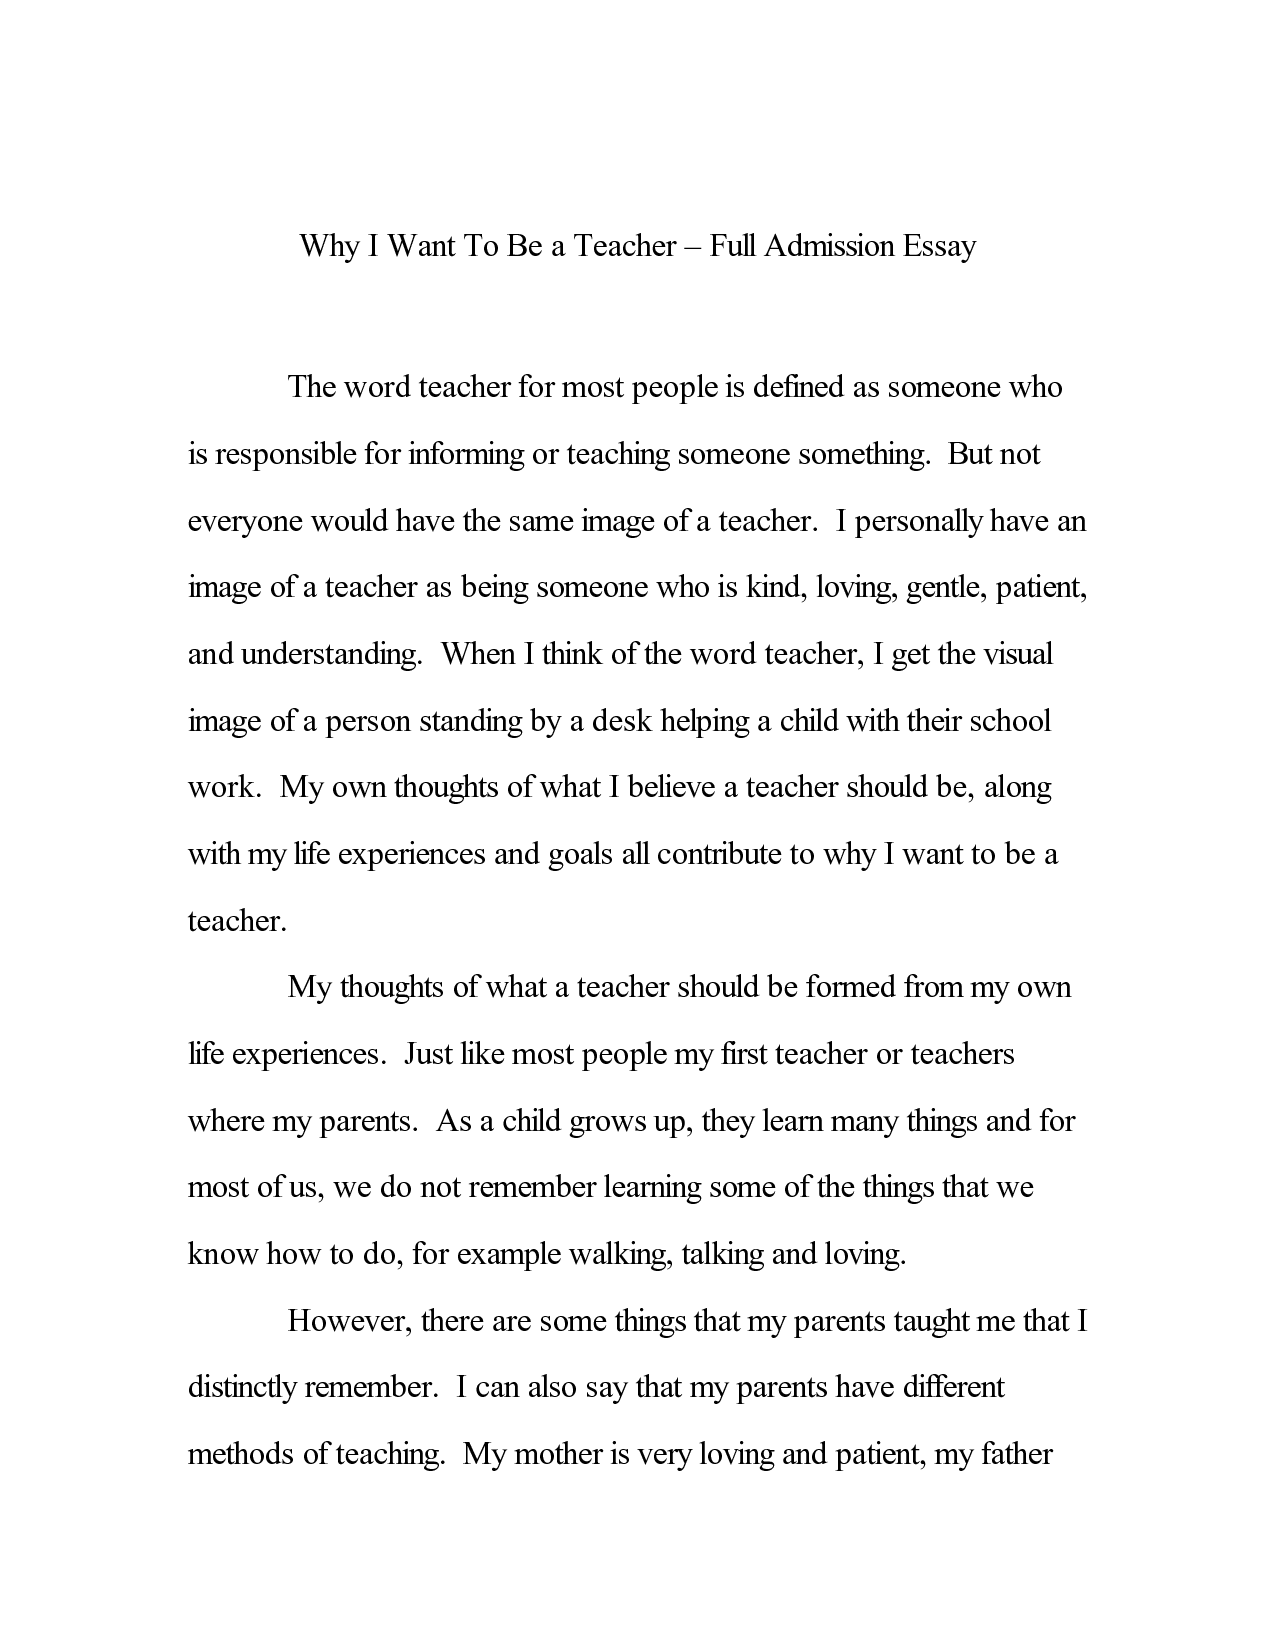 Application essay writing letter